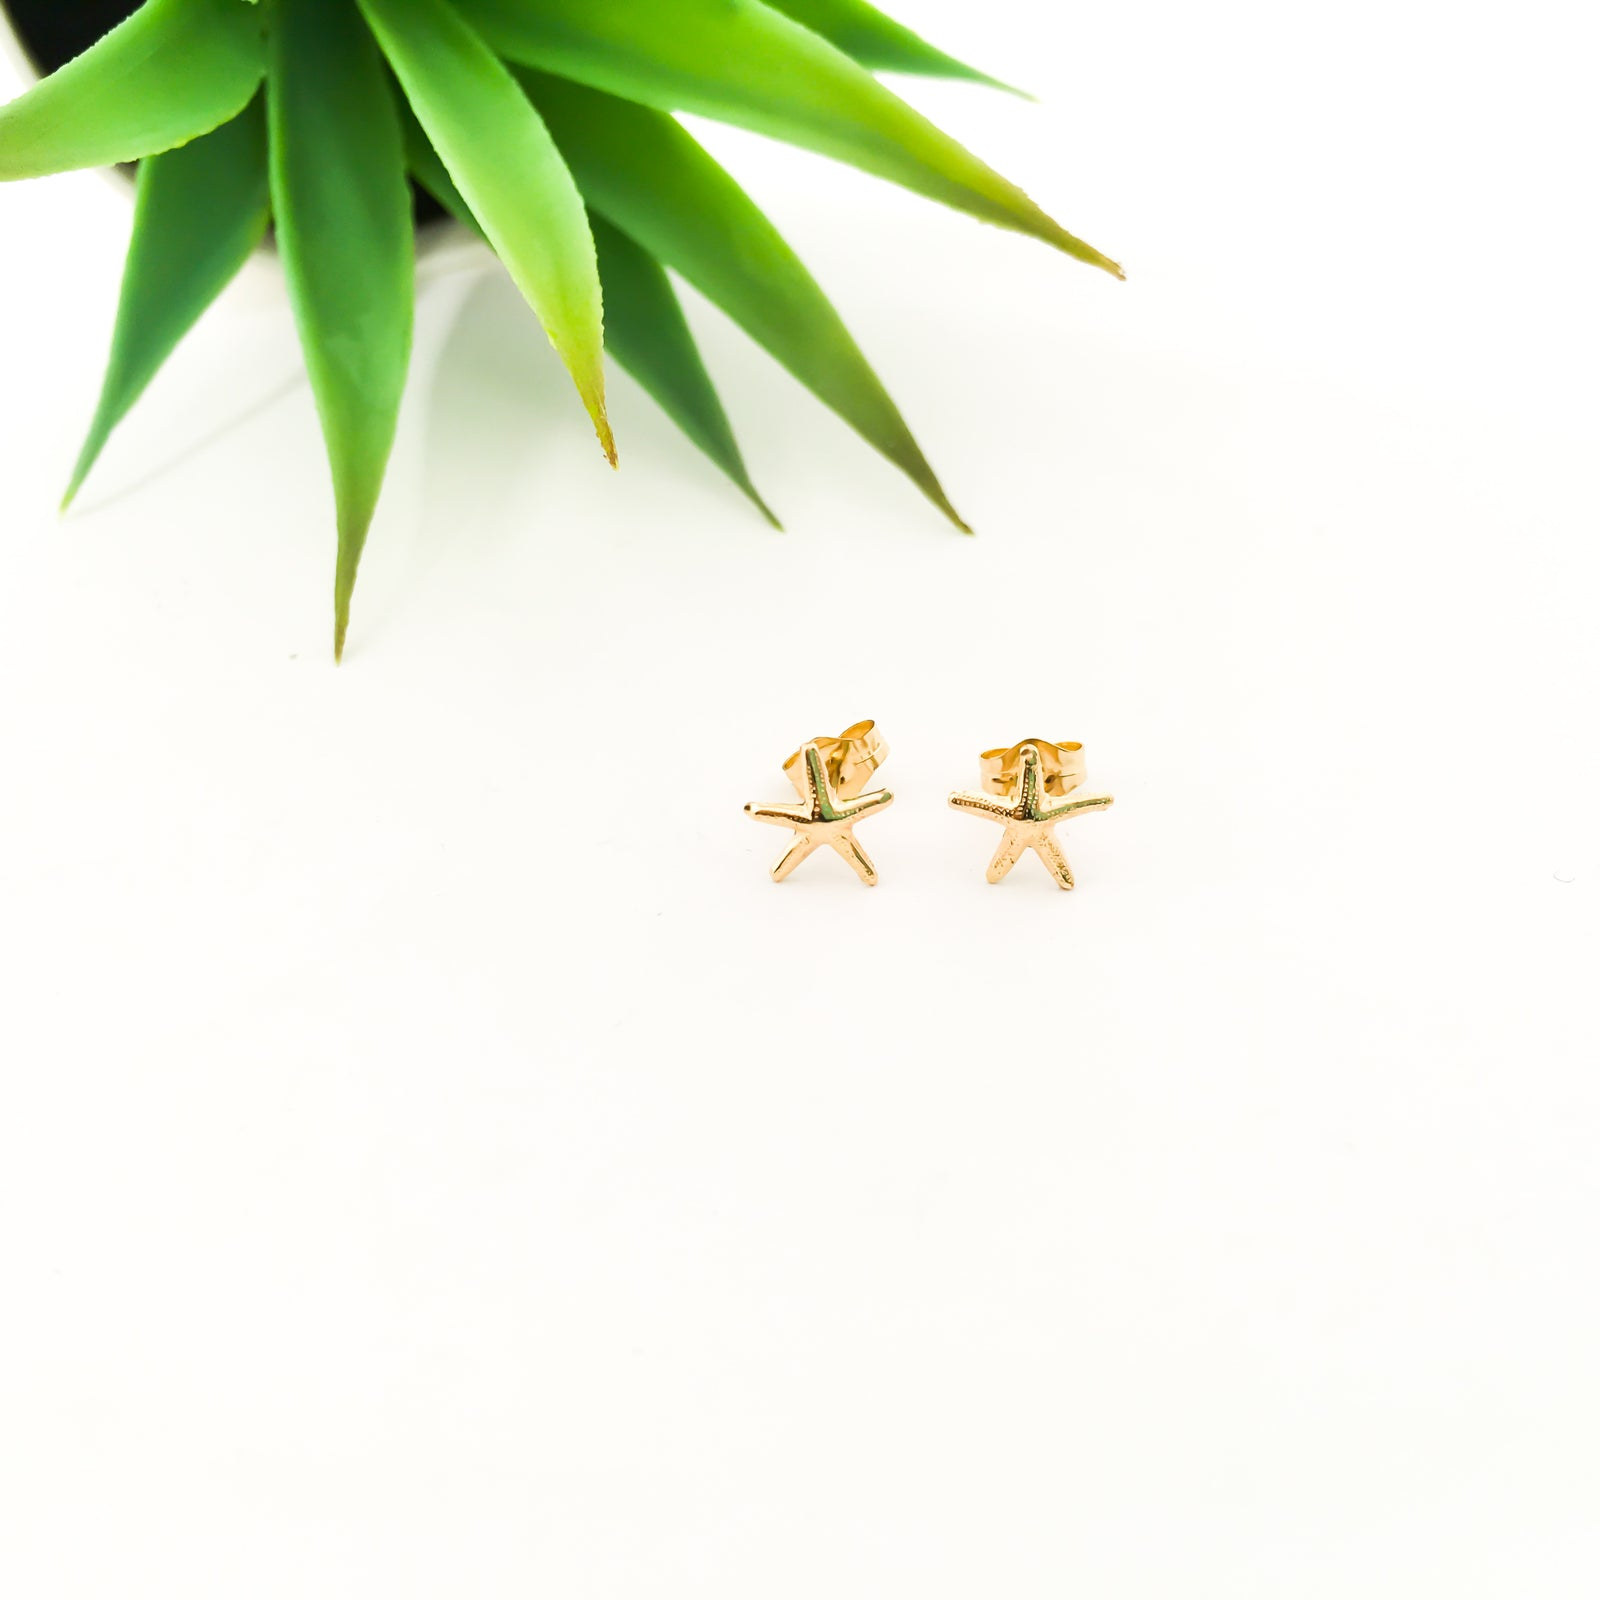 SMALL STARFISH STUD EARRINGS | 14K GOLD-FILLED